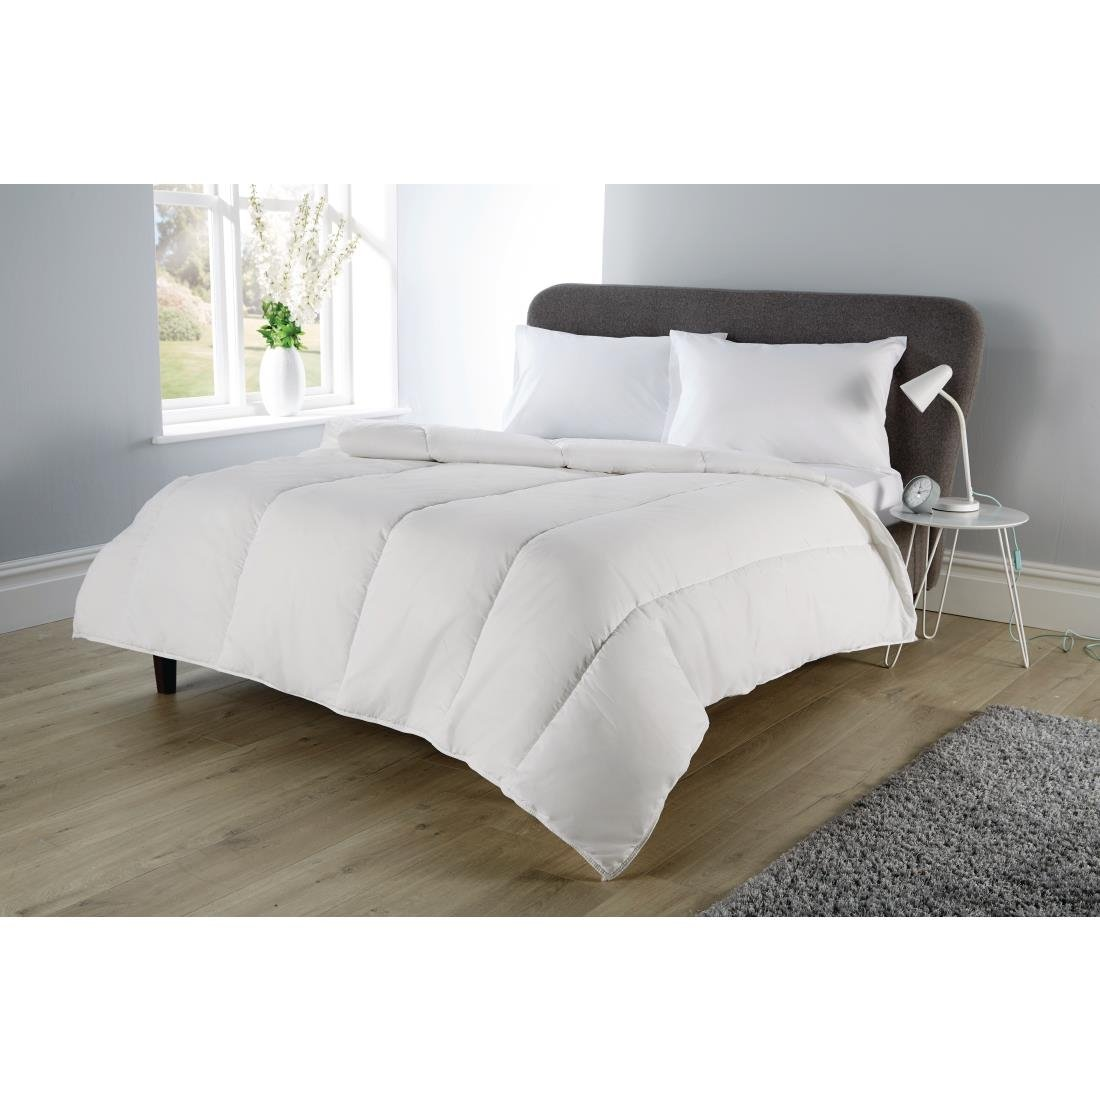 Eco Hollowfibre 10.5 Tog Duvet